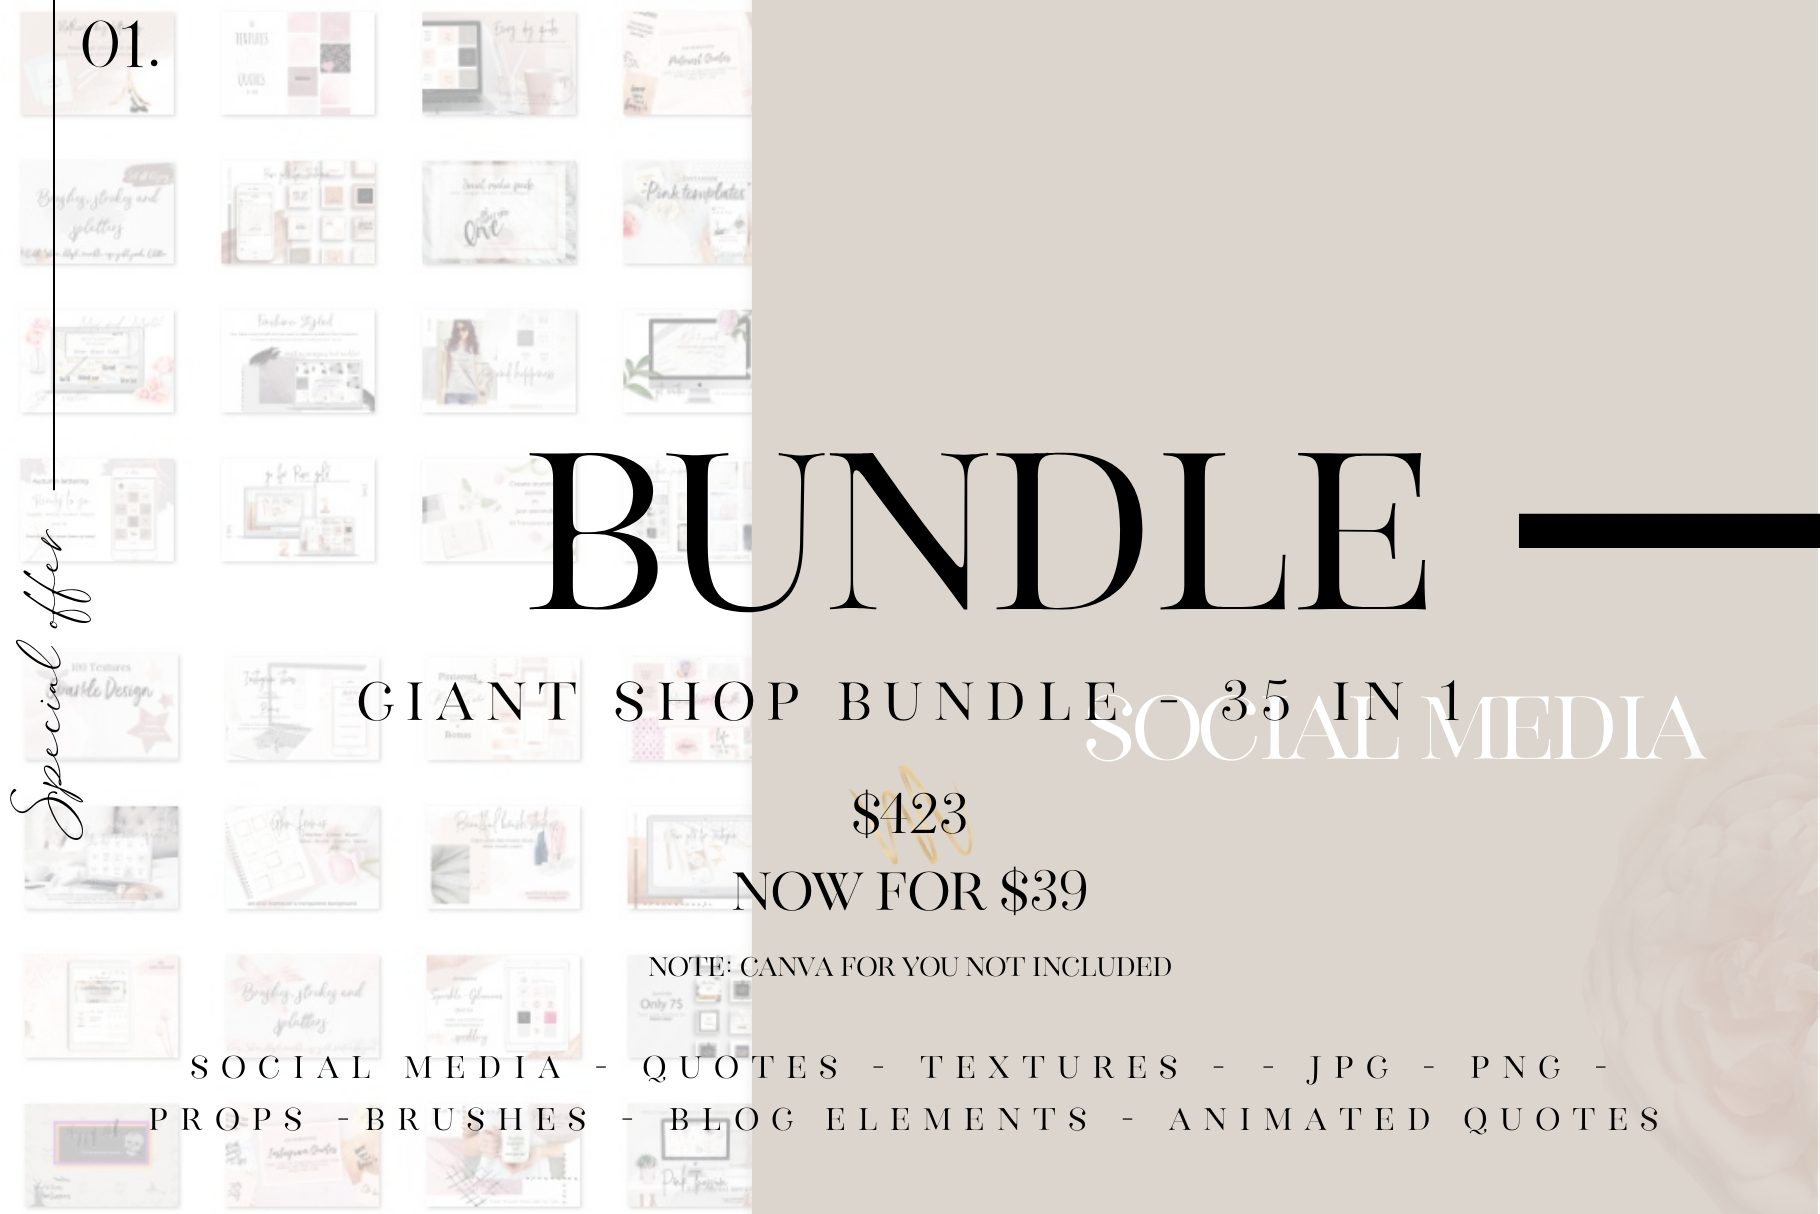 Giant shop bundle - 35 in 1 example image 1